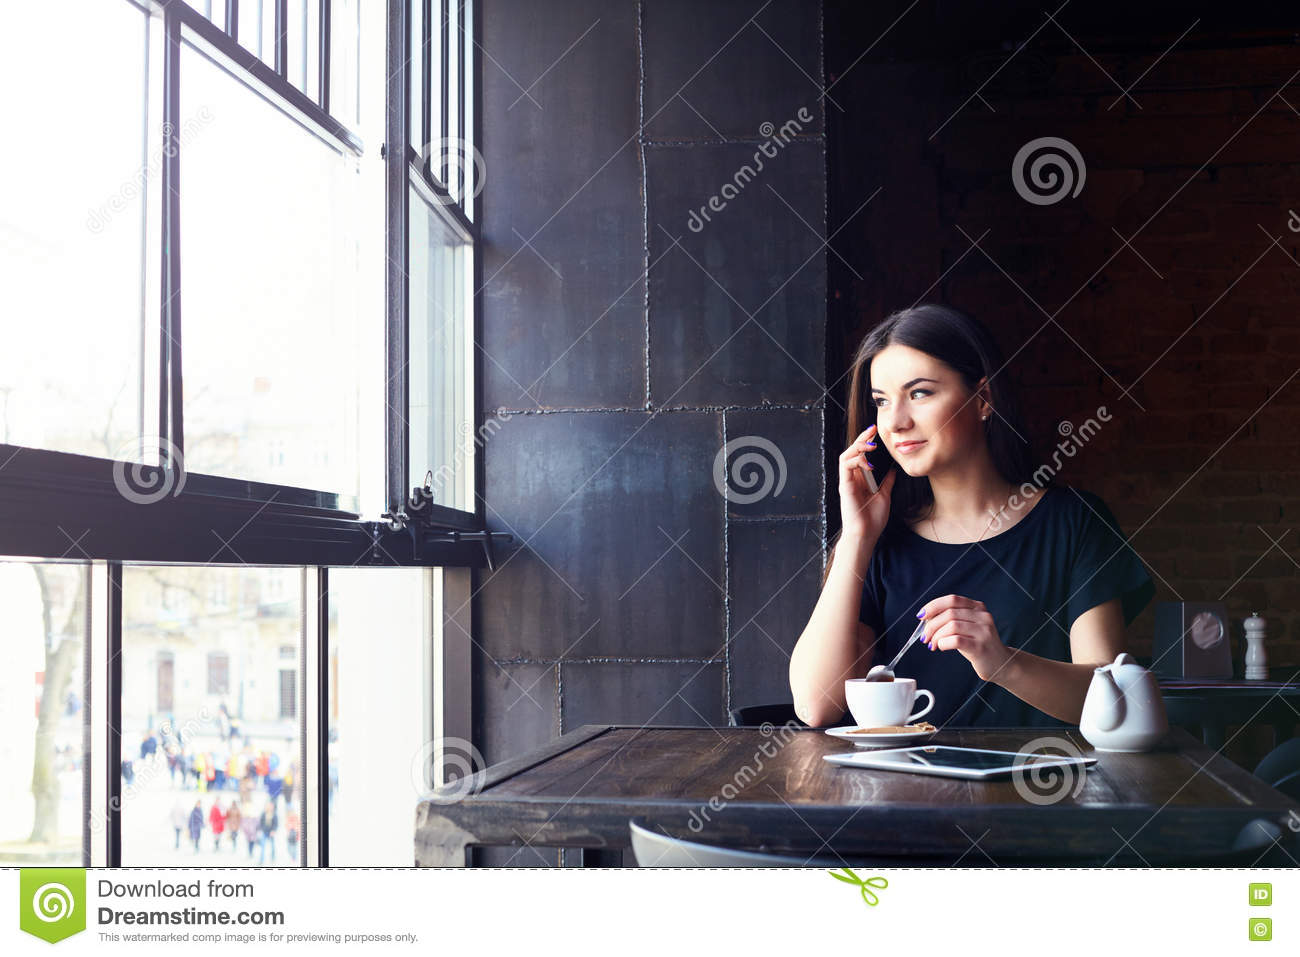 cyber cafe business plan in bangladesh female